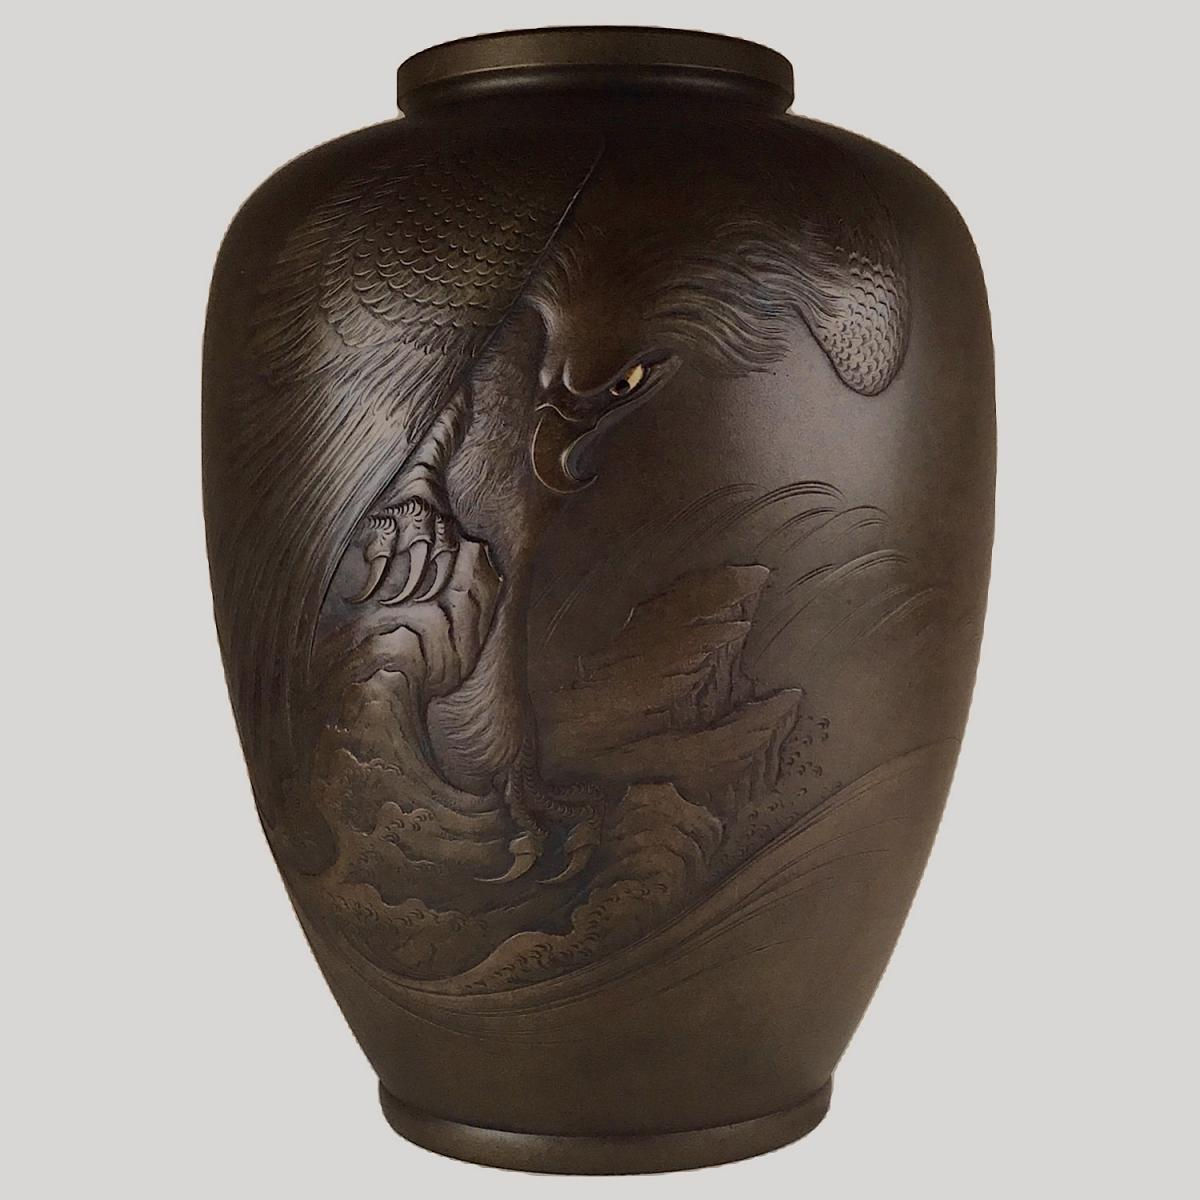 Japanese bronze vase with eagle signed Shuho Koku 秀峰刻, late Meiji Period